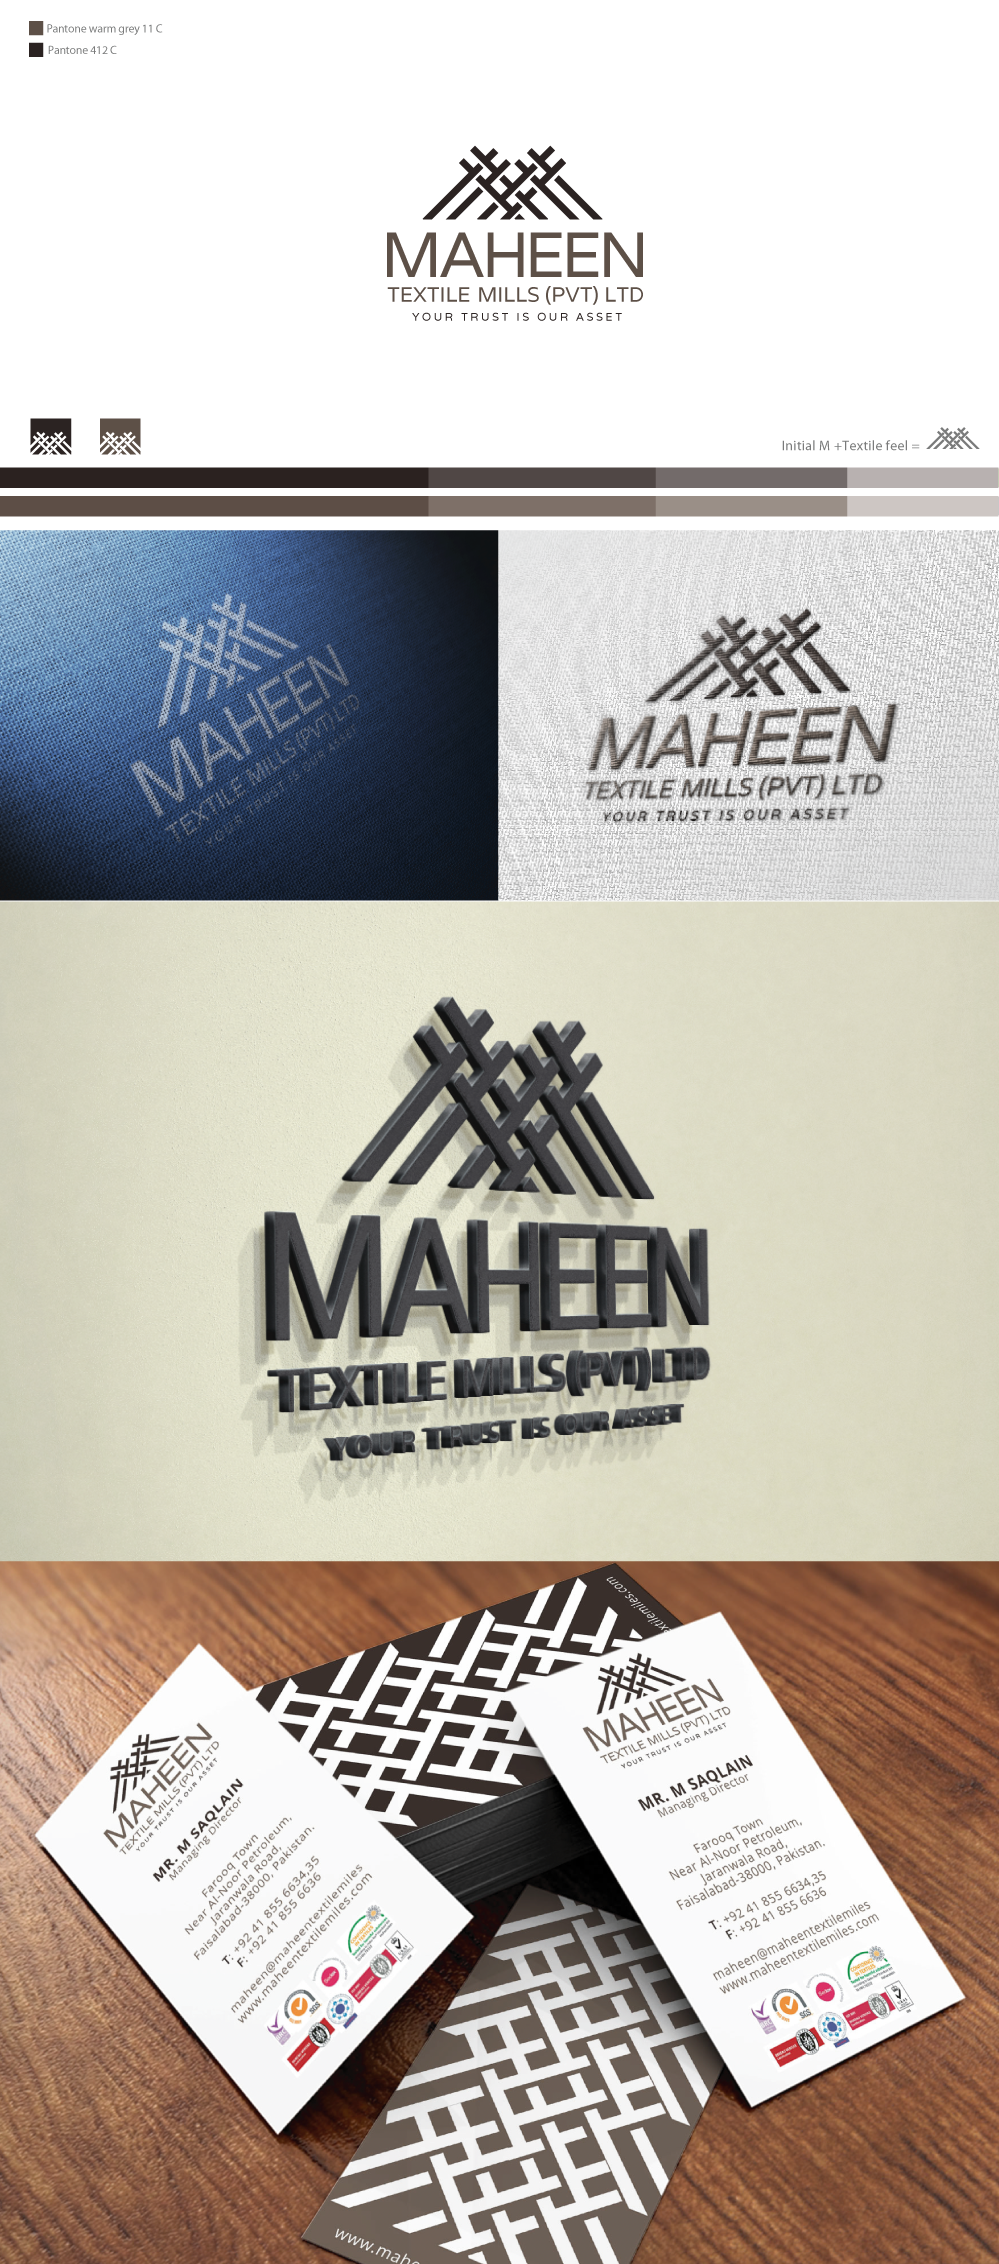 Maheen Textile Mills (pvt) Ltd with a new logo and business card